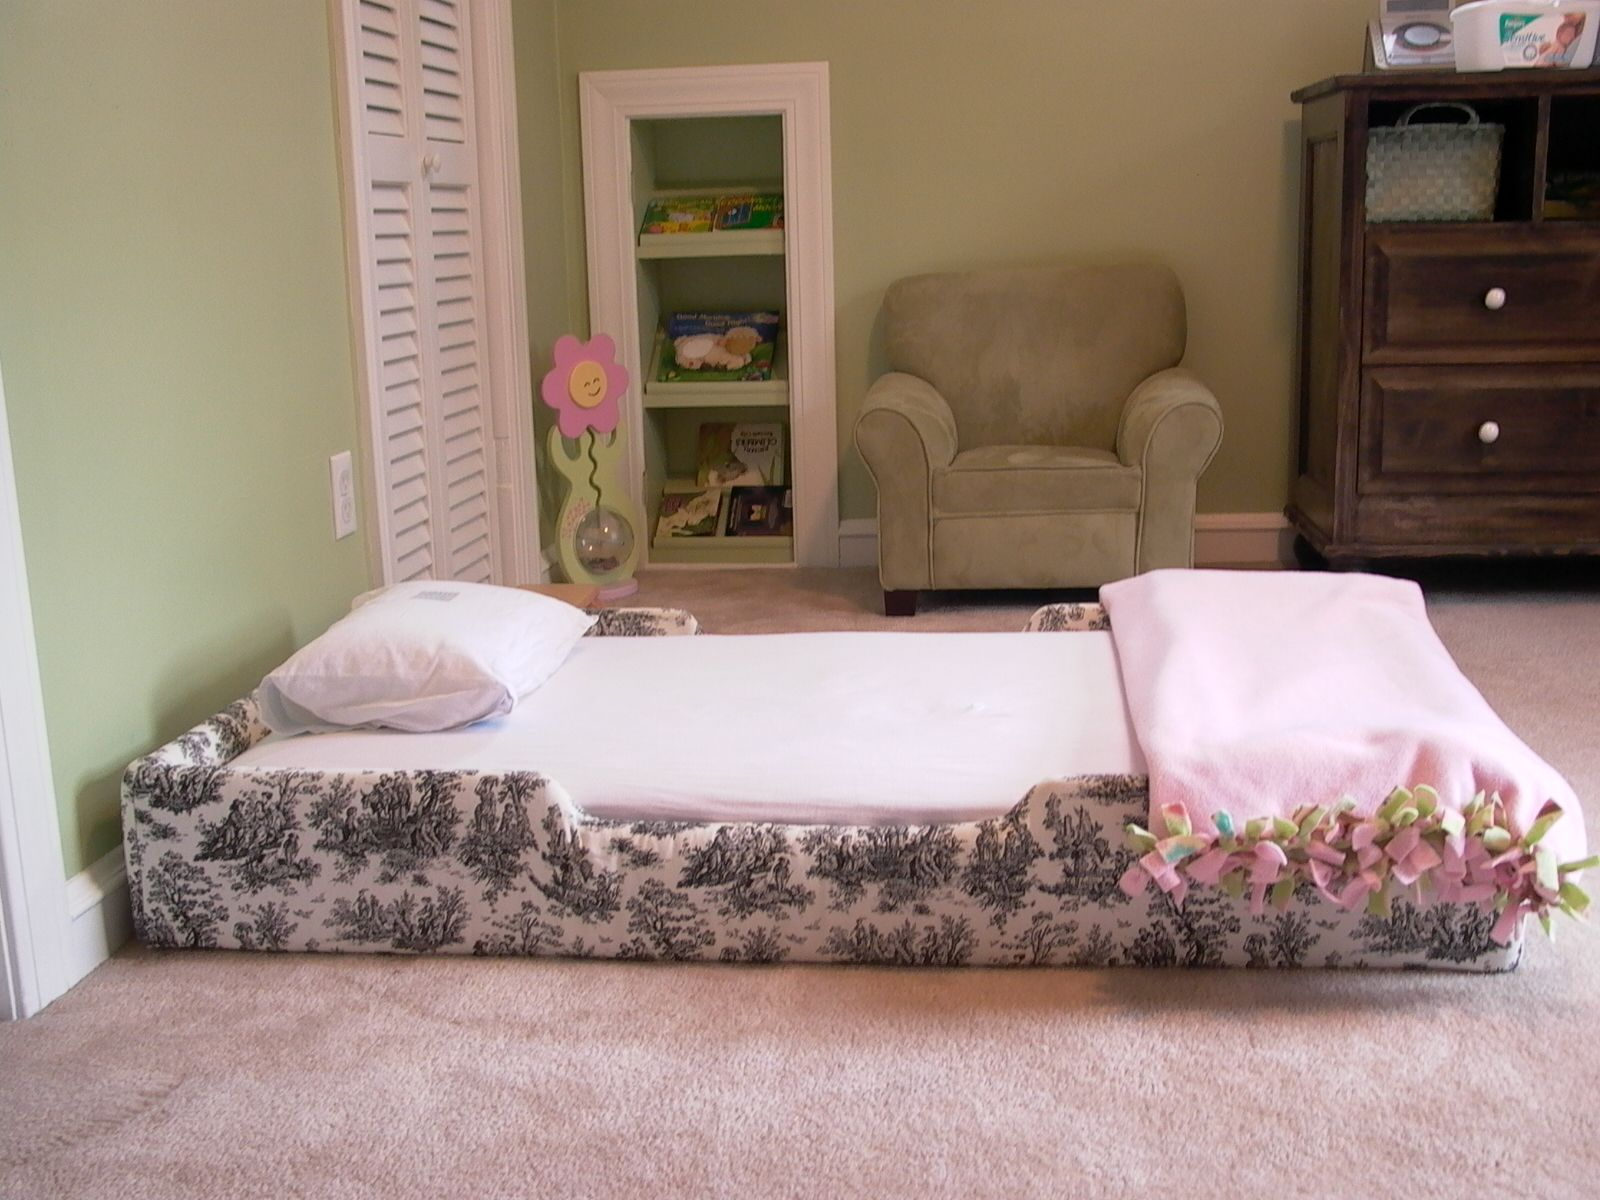 This was my daughter's room at the age of 1. The floor bed